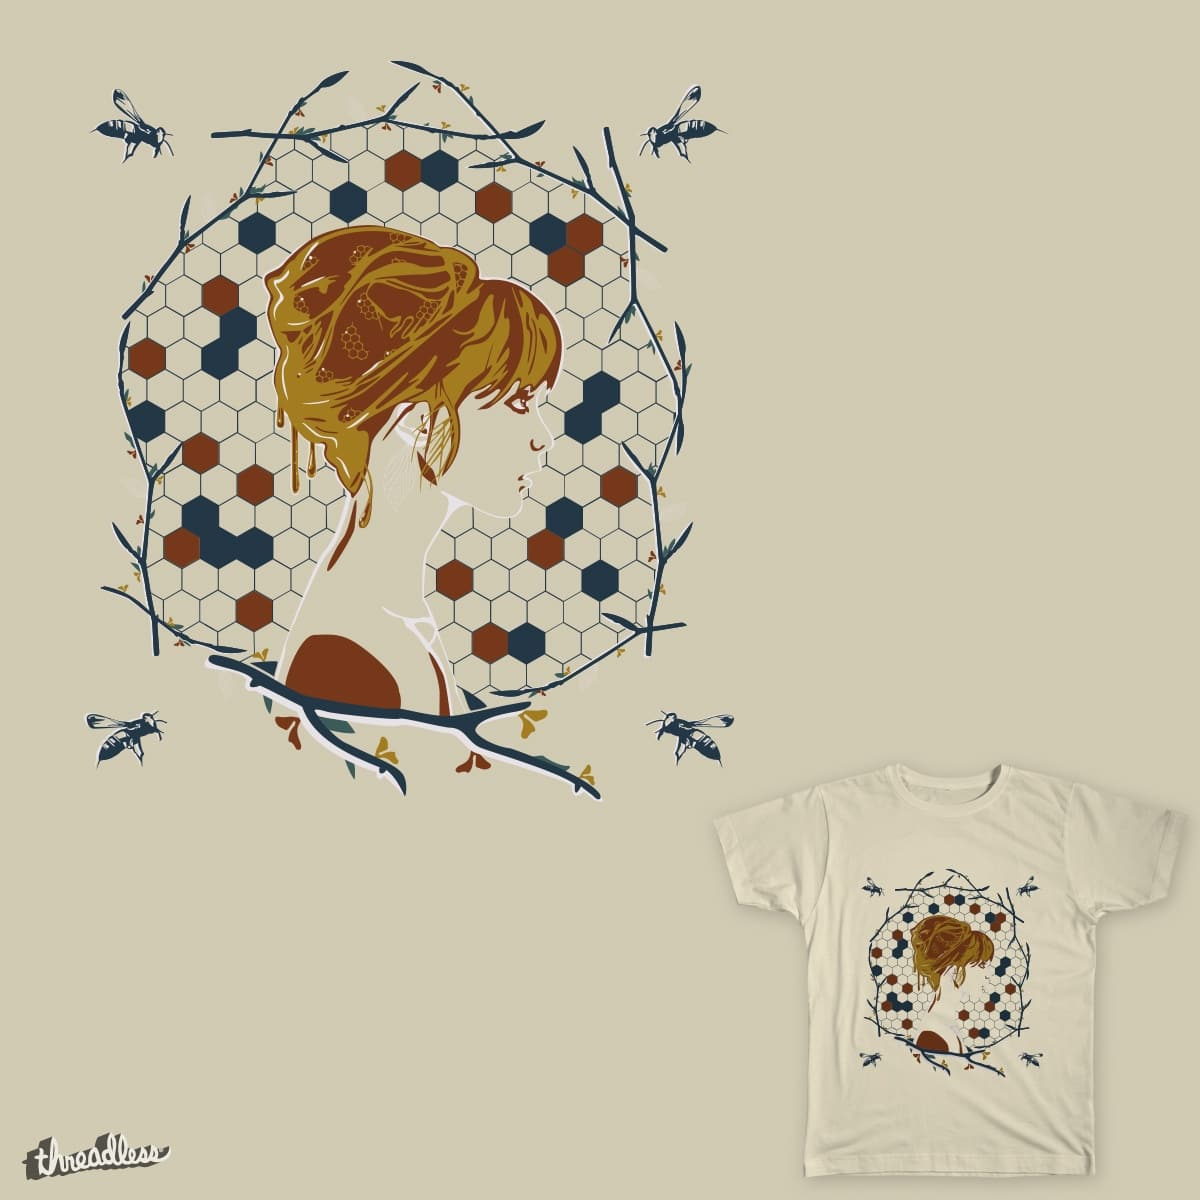 The Beehive by wjtinder on Threadless